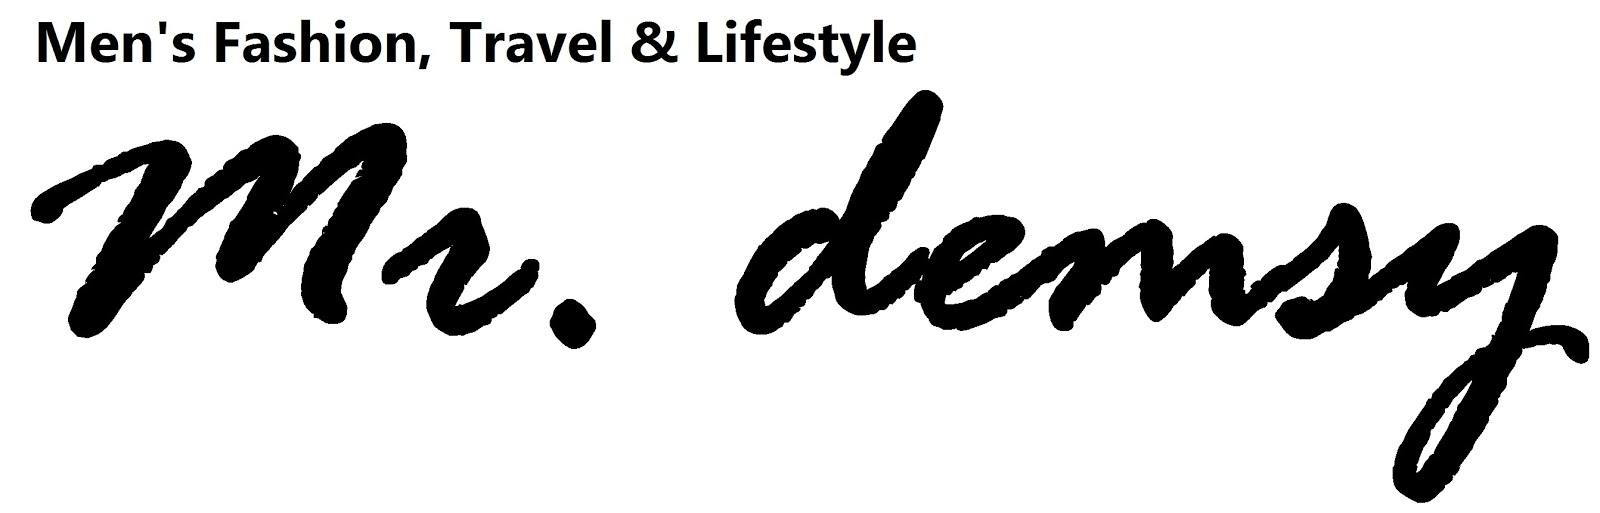 Mr Demsy - Men's Fashion, Travel & Lifestyle